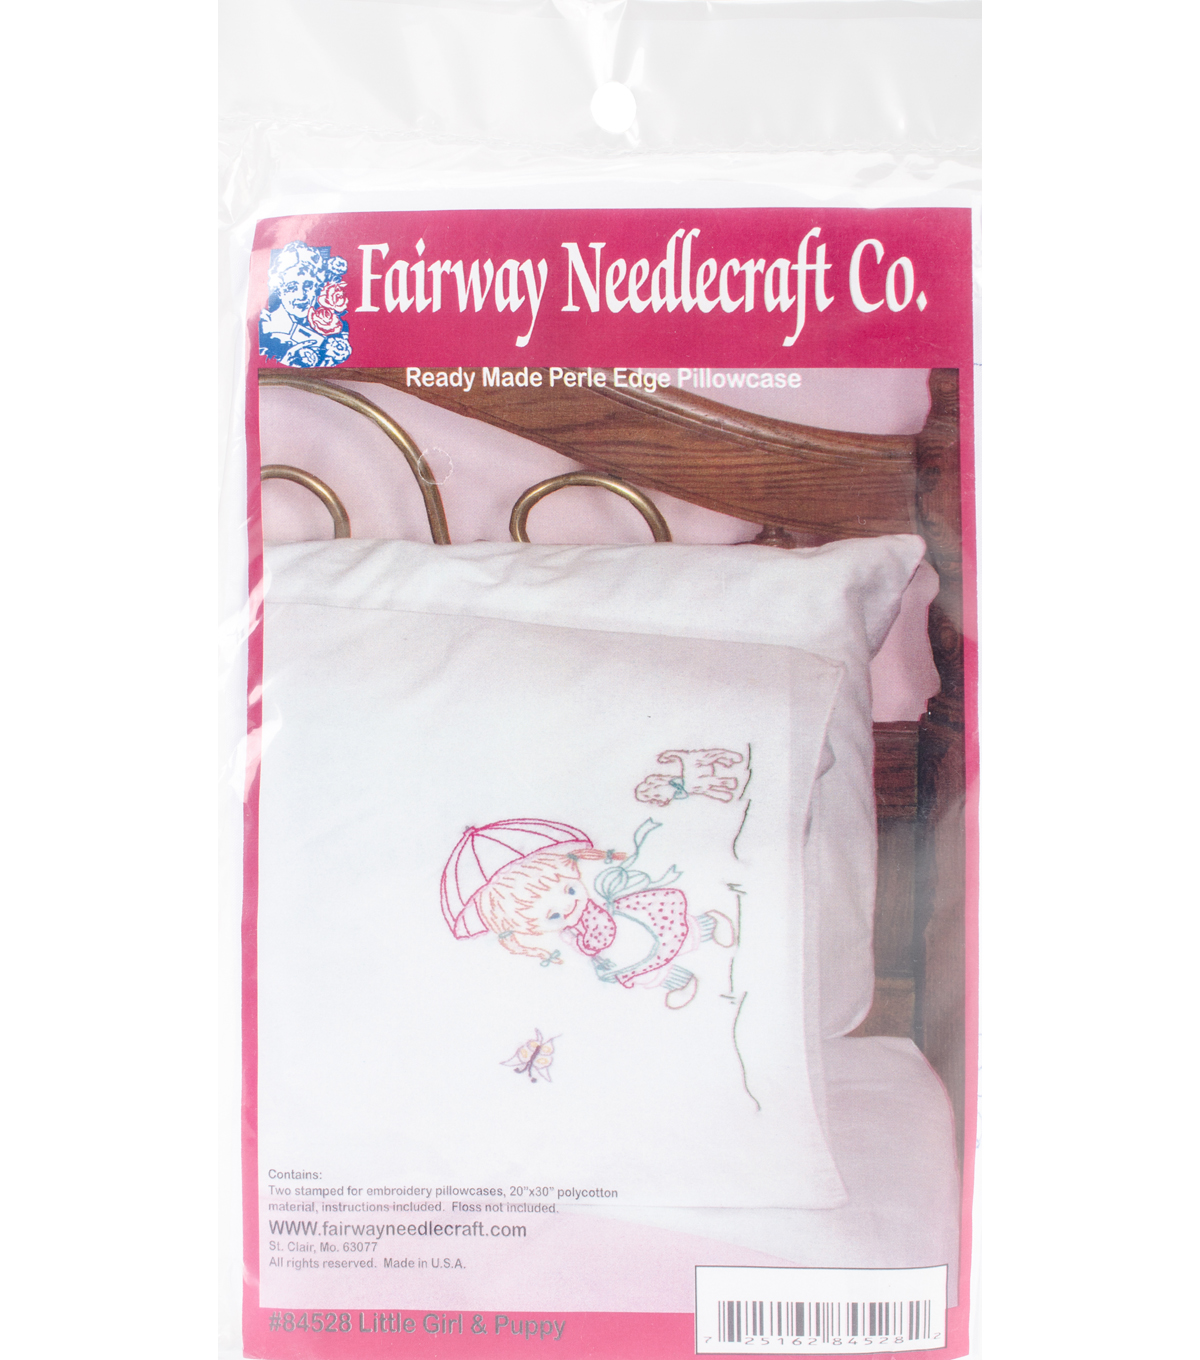 Fairway Needlecraft Stamped Perle Edge Pillowcases-Girl with Puppy